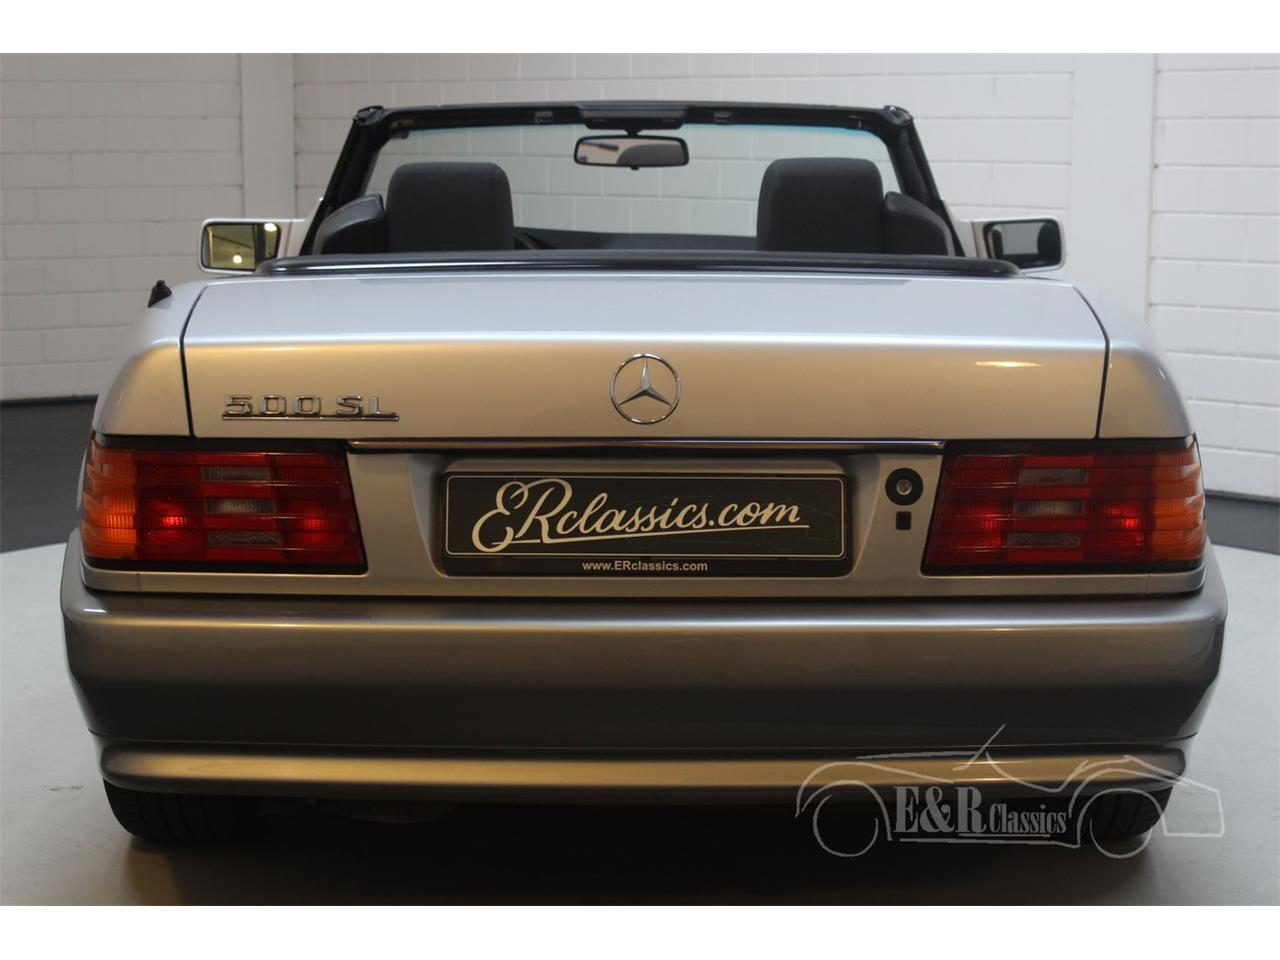 Large Picture of 1991 Mercedes-Benz 500SL located in Waalwijk noord brabant - $22,350.00 Offered by E & R Classics - Q33D